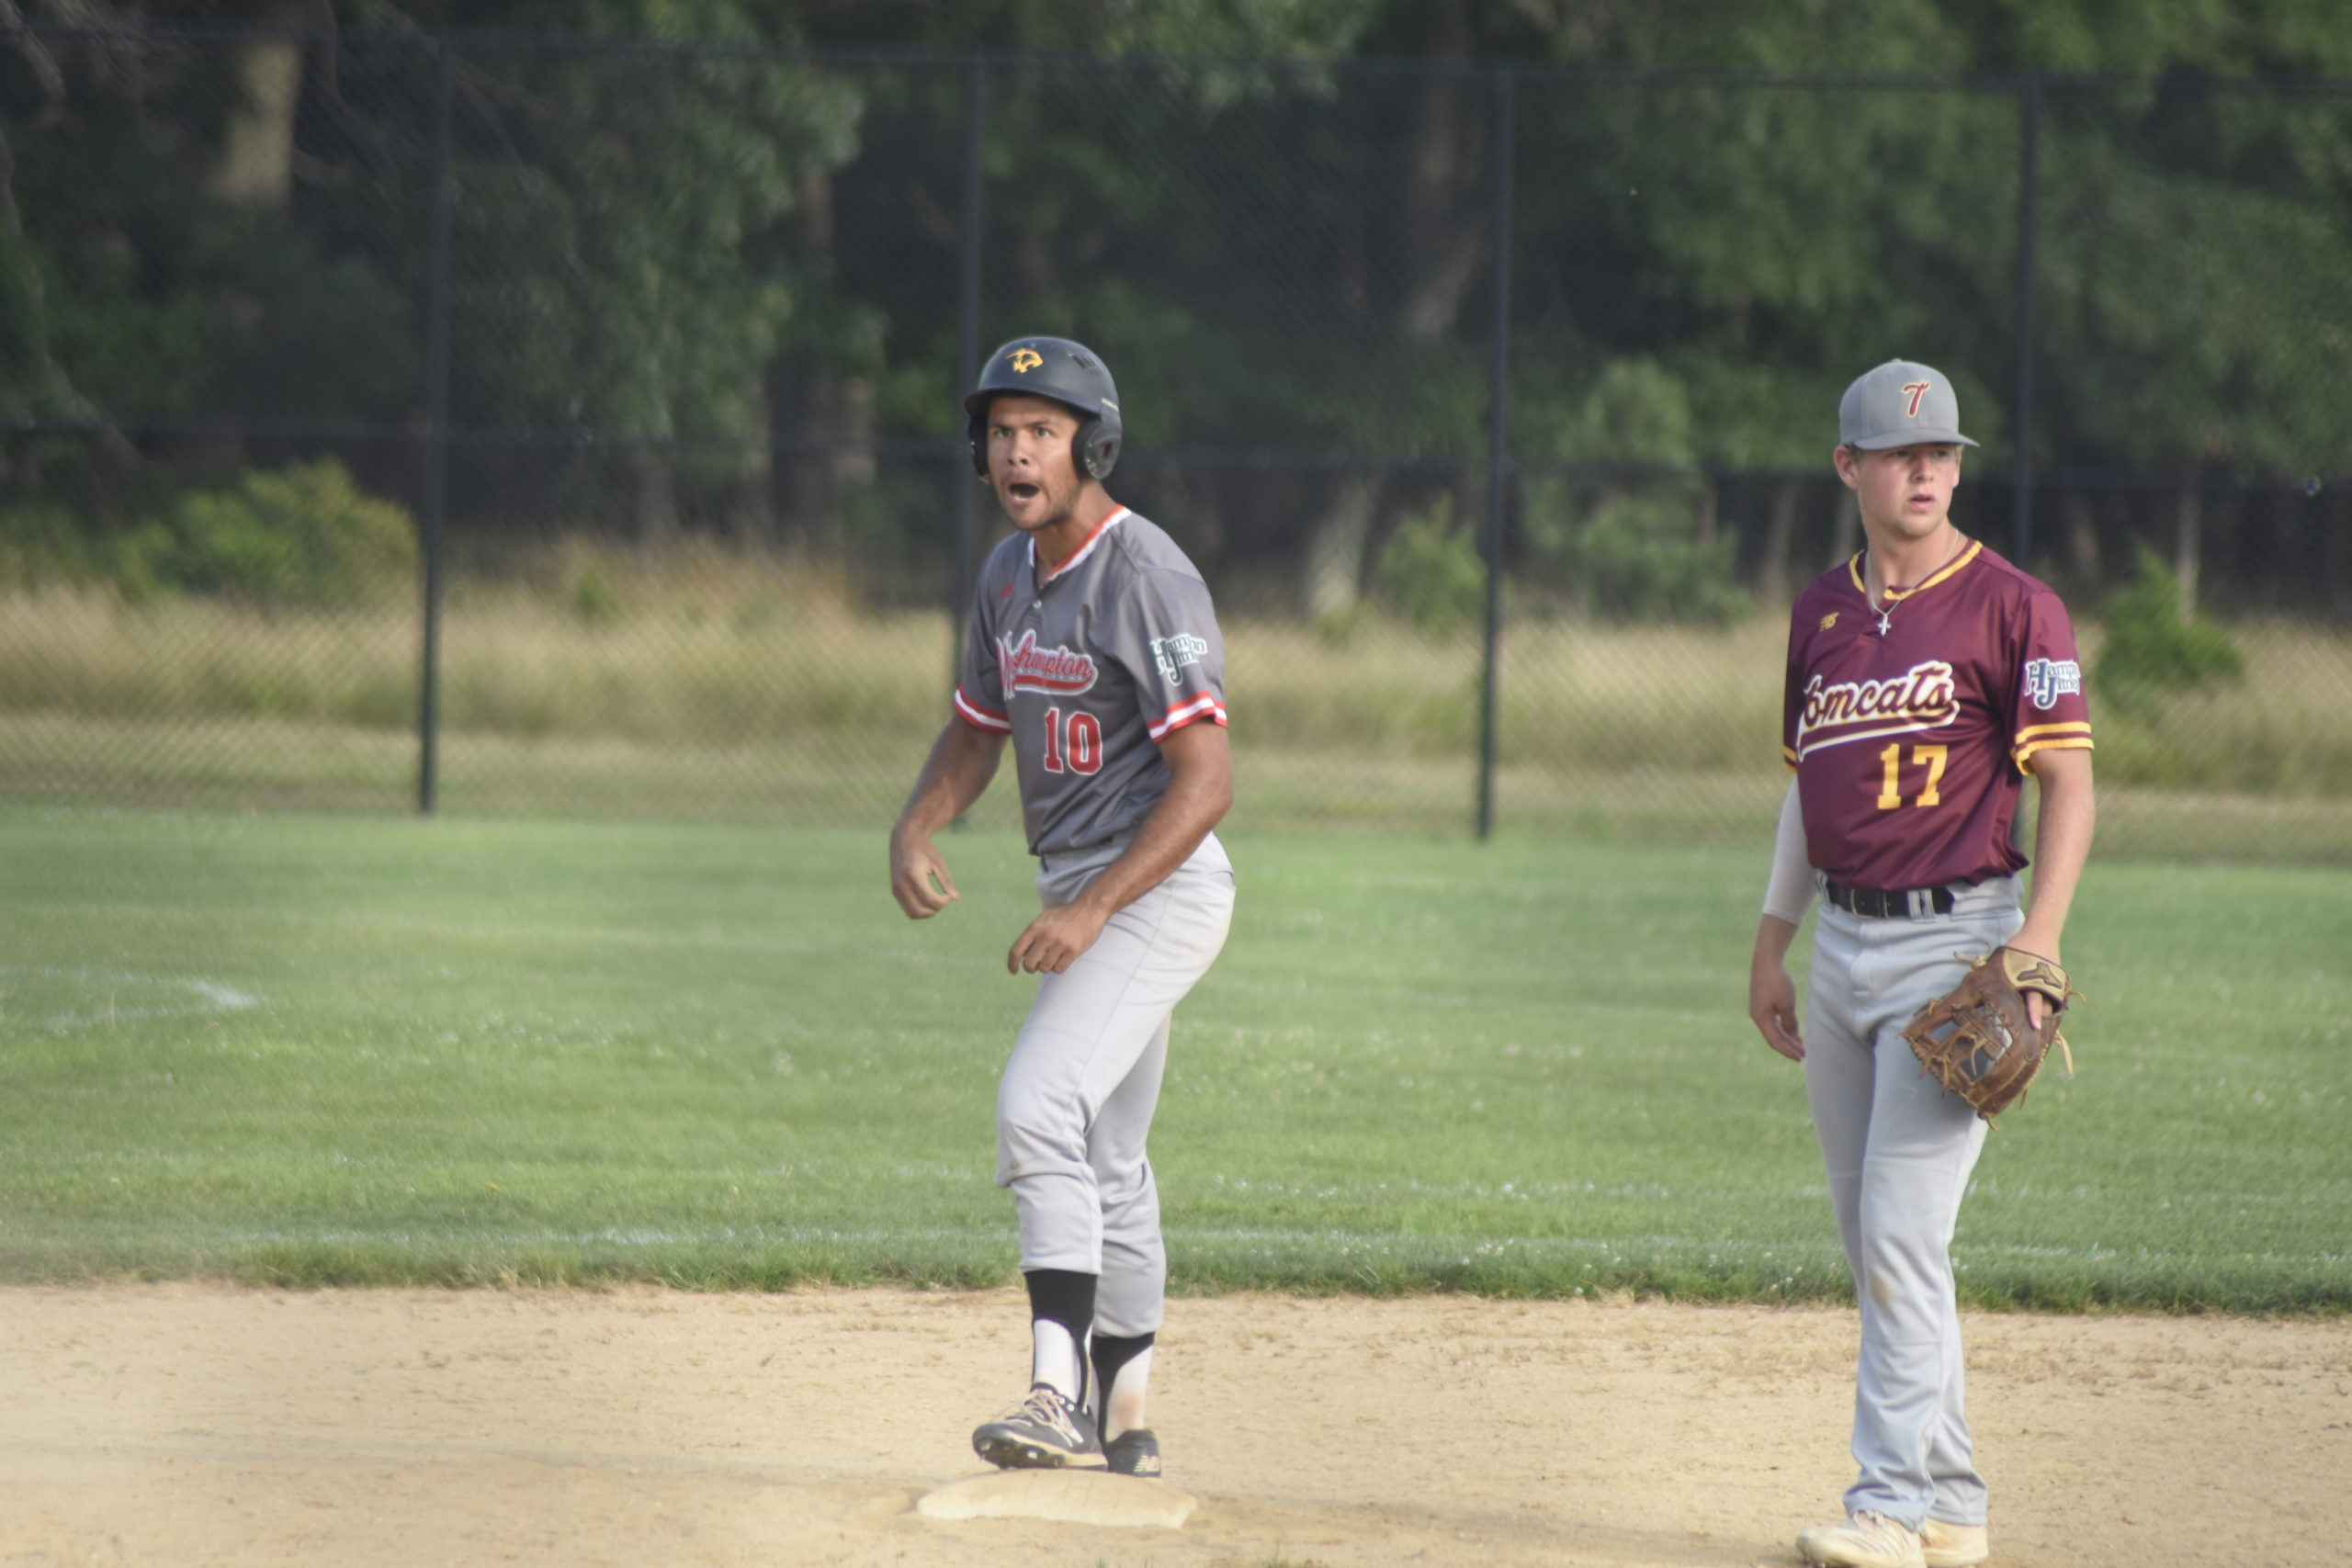 Tim Feliz (Adelphi) is pumped up after stealing second base late in the game.